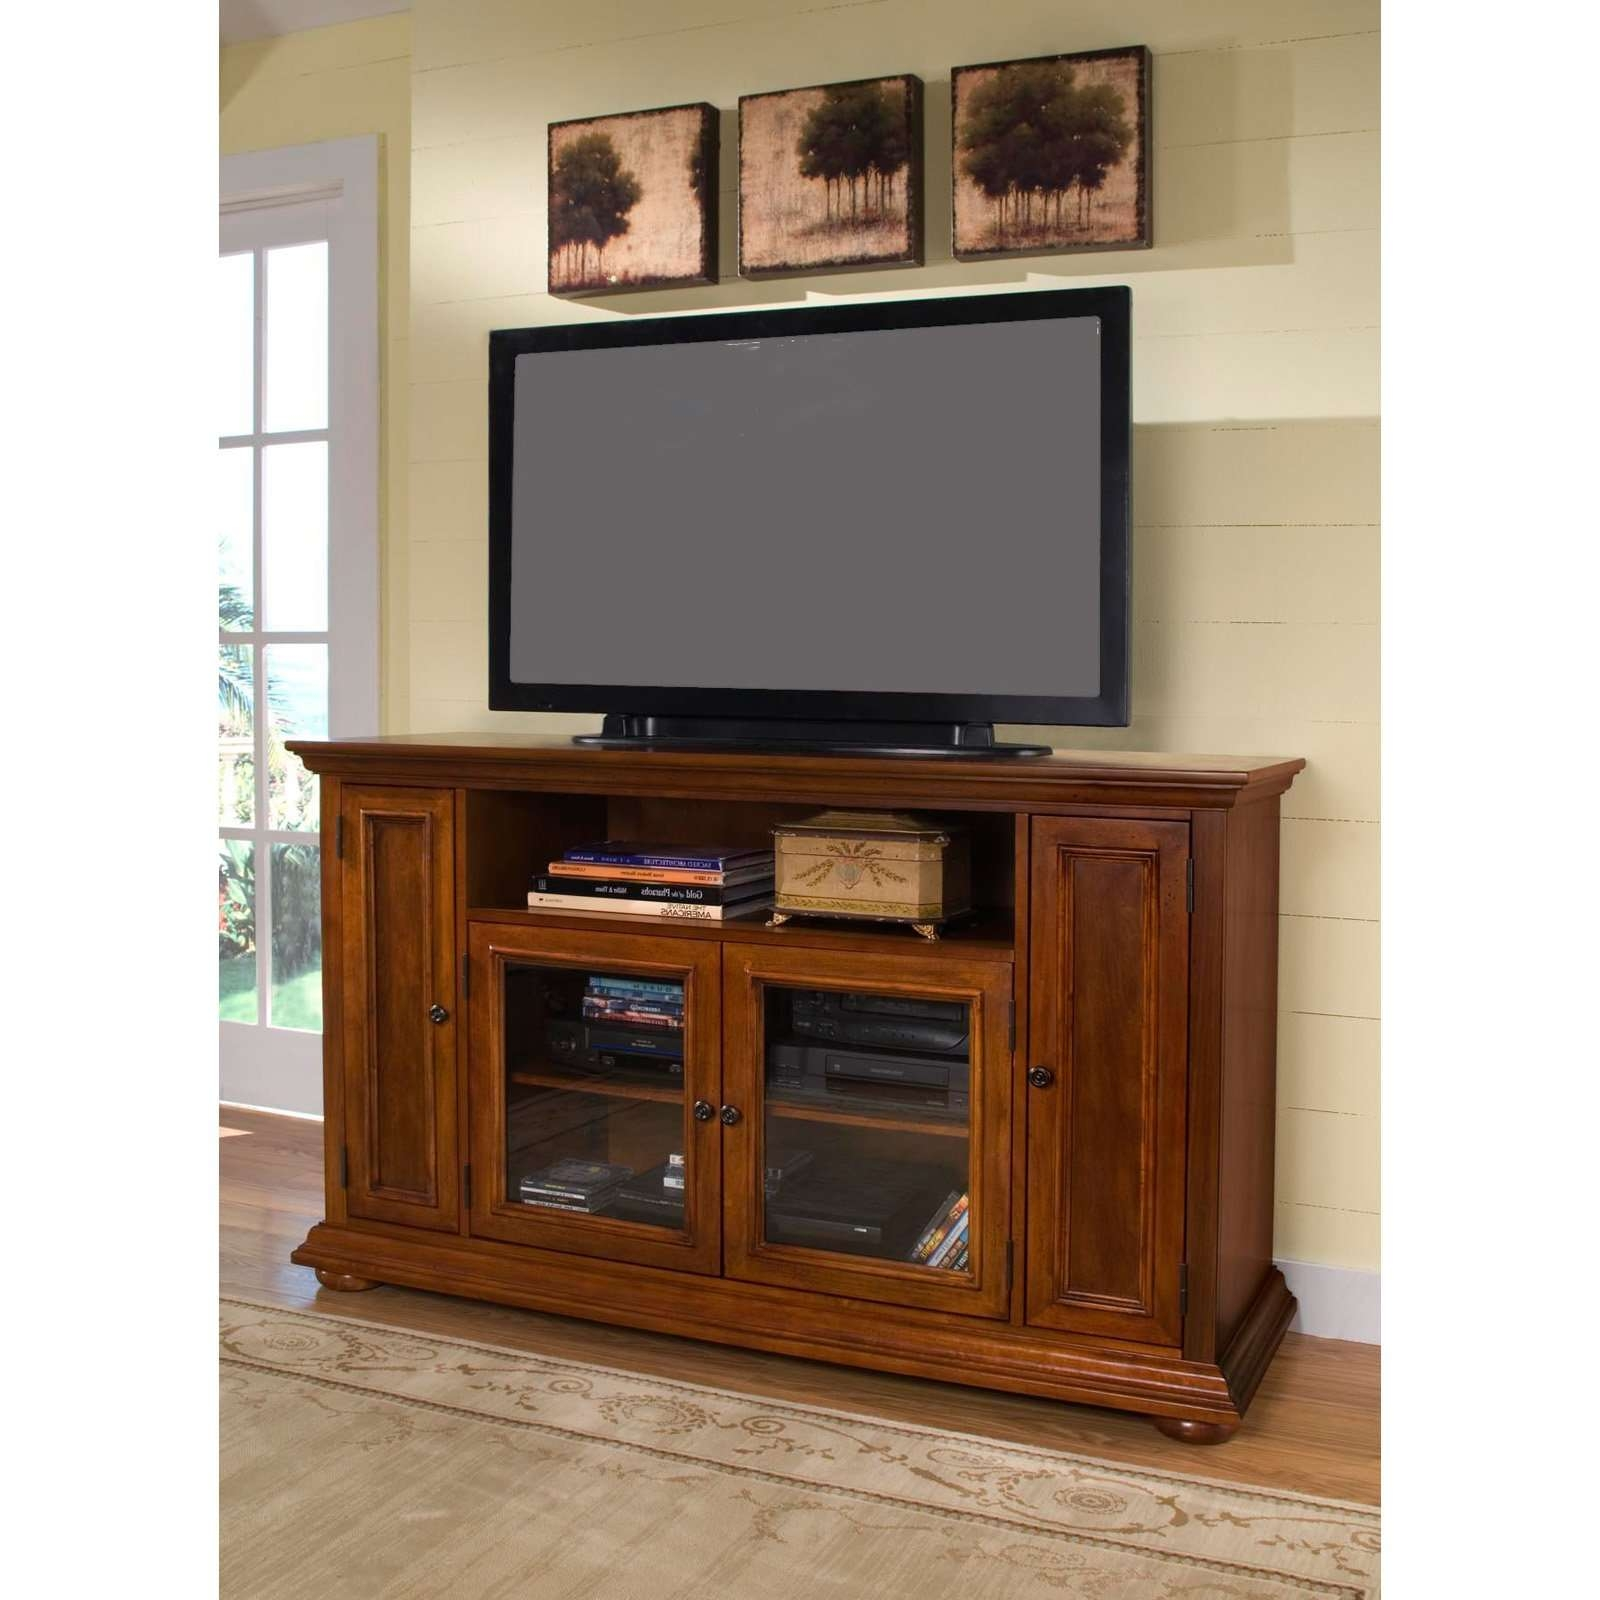 Home Decor: Marvelous Wood Tv Stands For Flat Screens Plus Light With Regard To Light Oak Tv Stands Flat Screen (View 7 of 15)